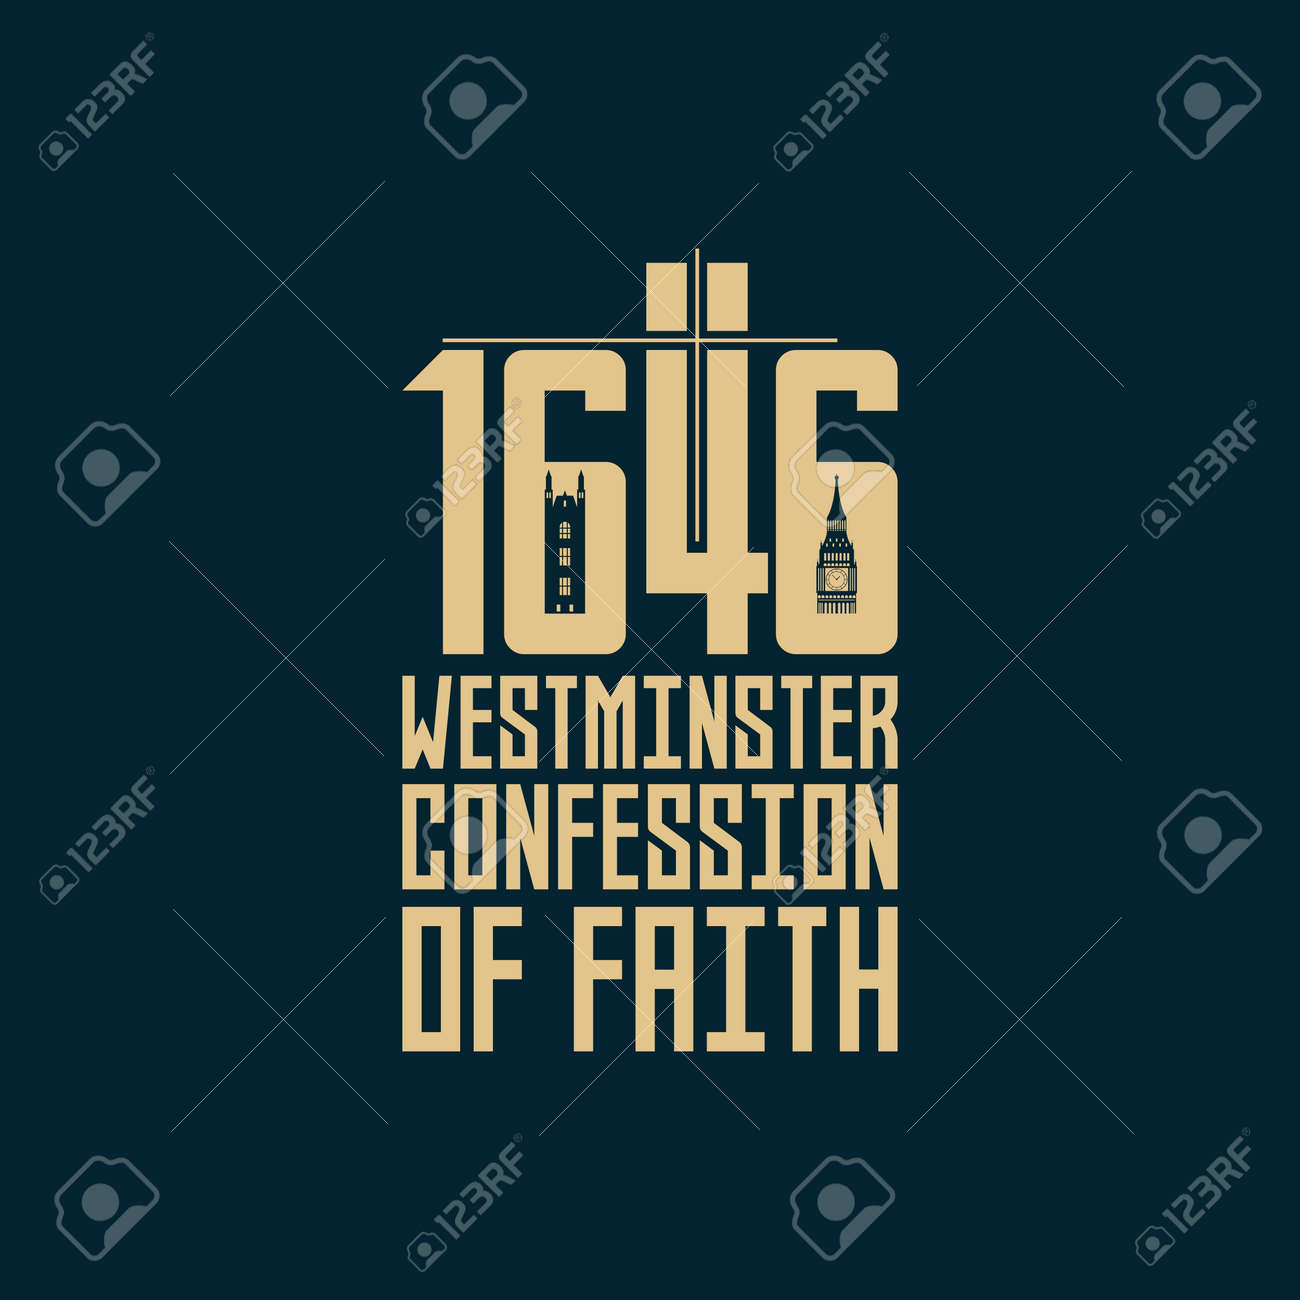 Reformed christian art. 1646 The Westminster Confession of Faith. - 166911204